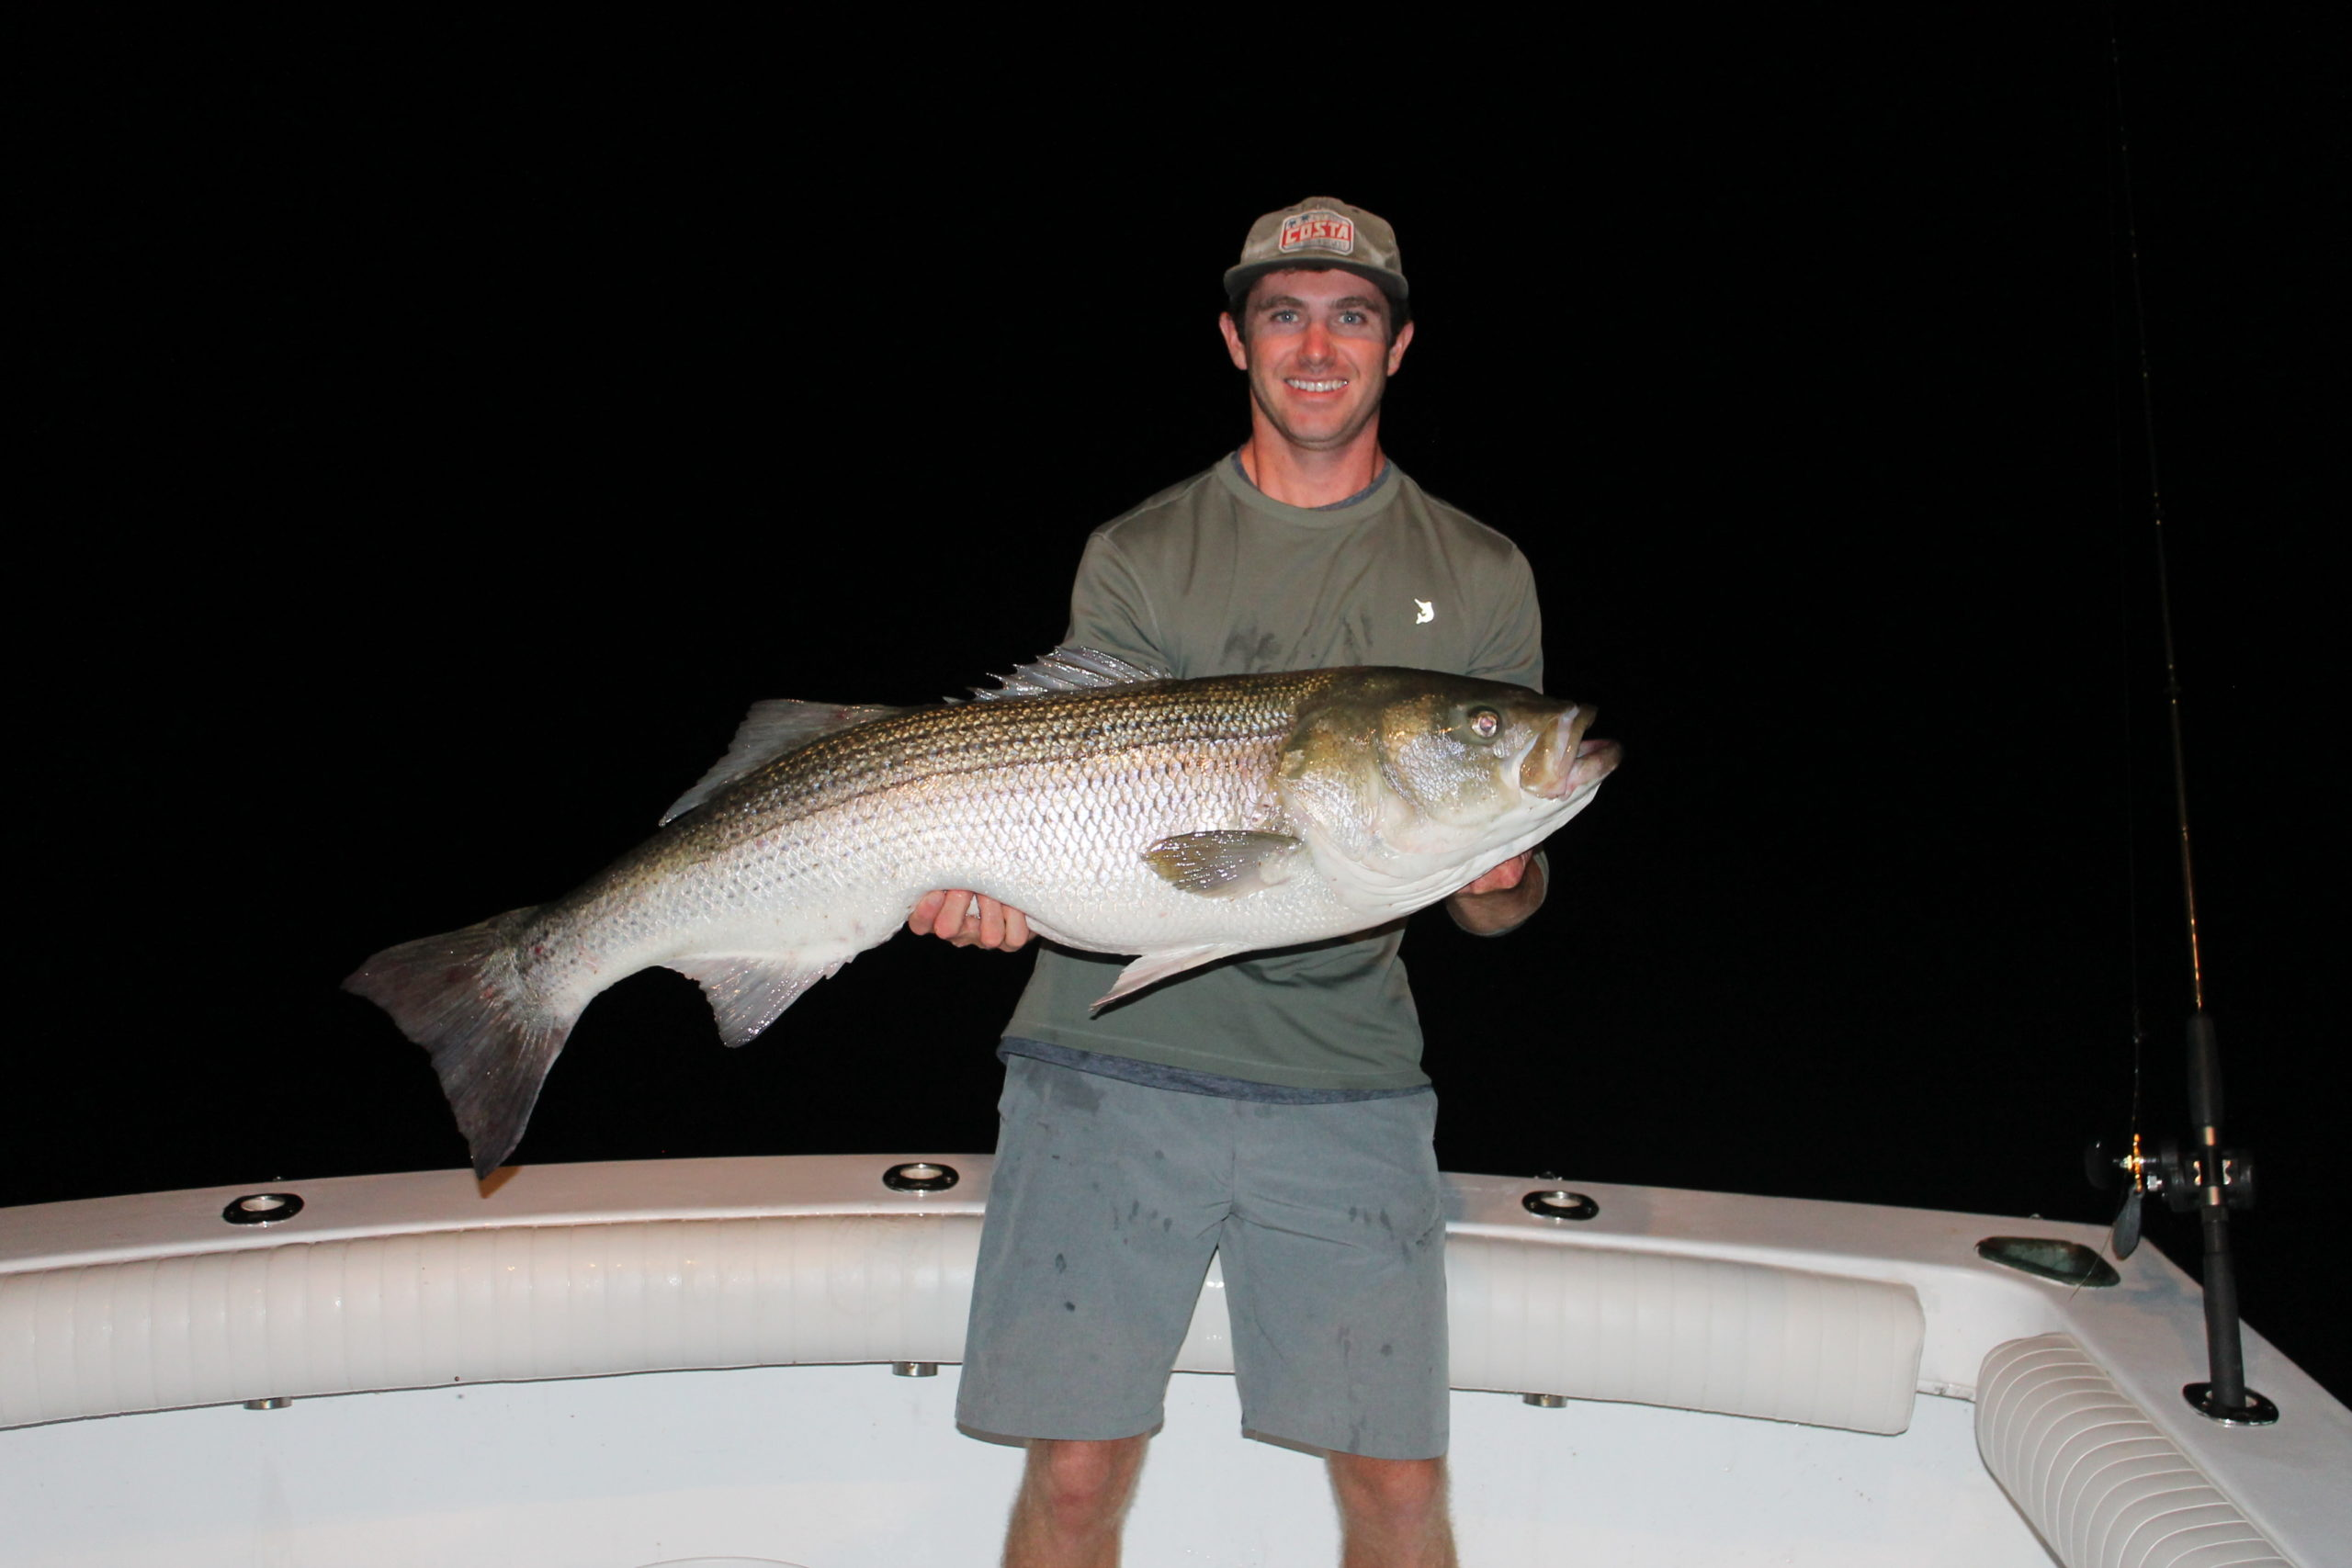 Hunter Wilcox with a big striped bass caught while fishing at night off Montauk Point with Capt. Ben McCarron of Push The Limit Sportfishing.